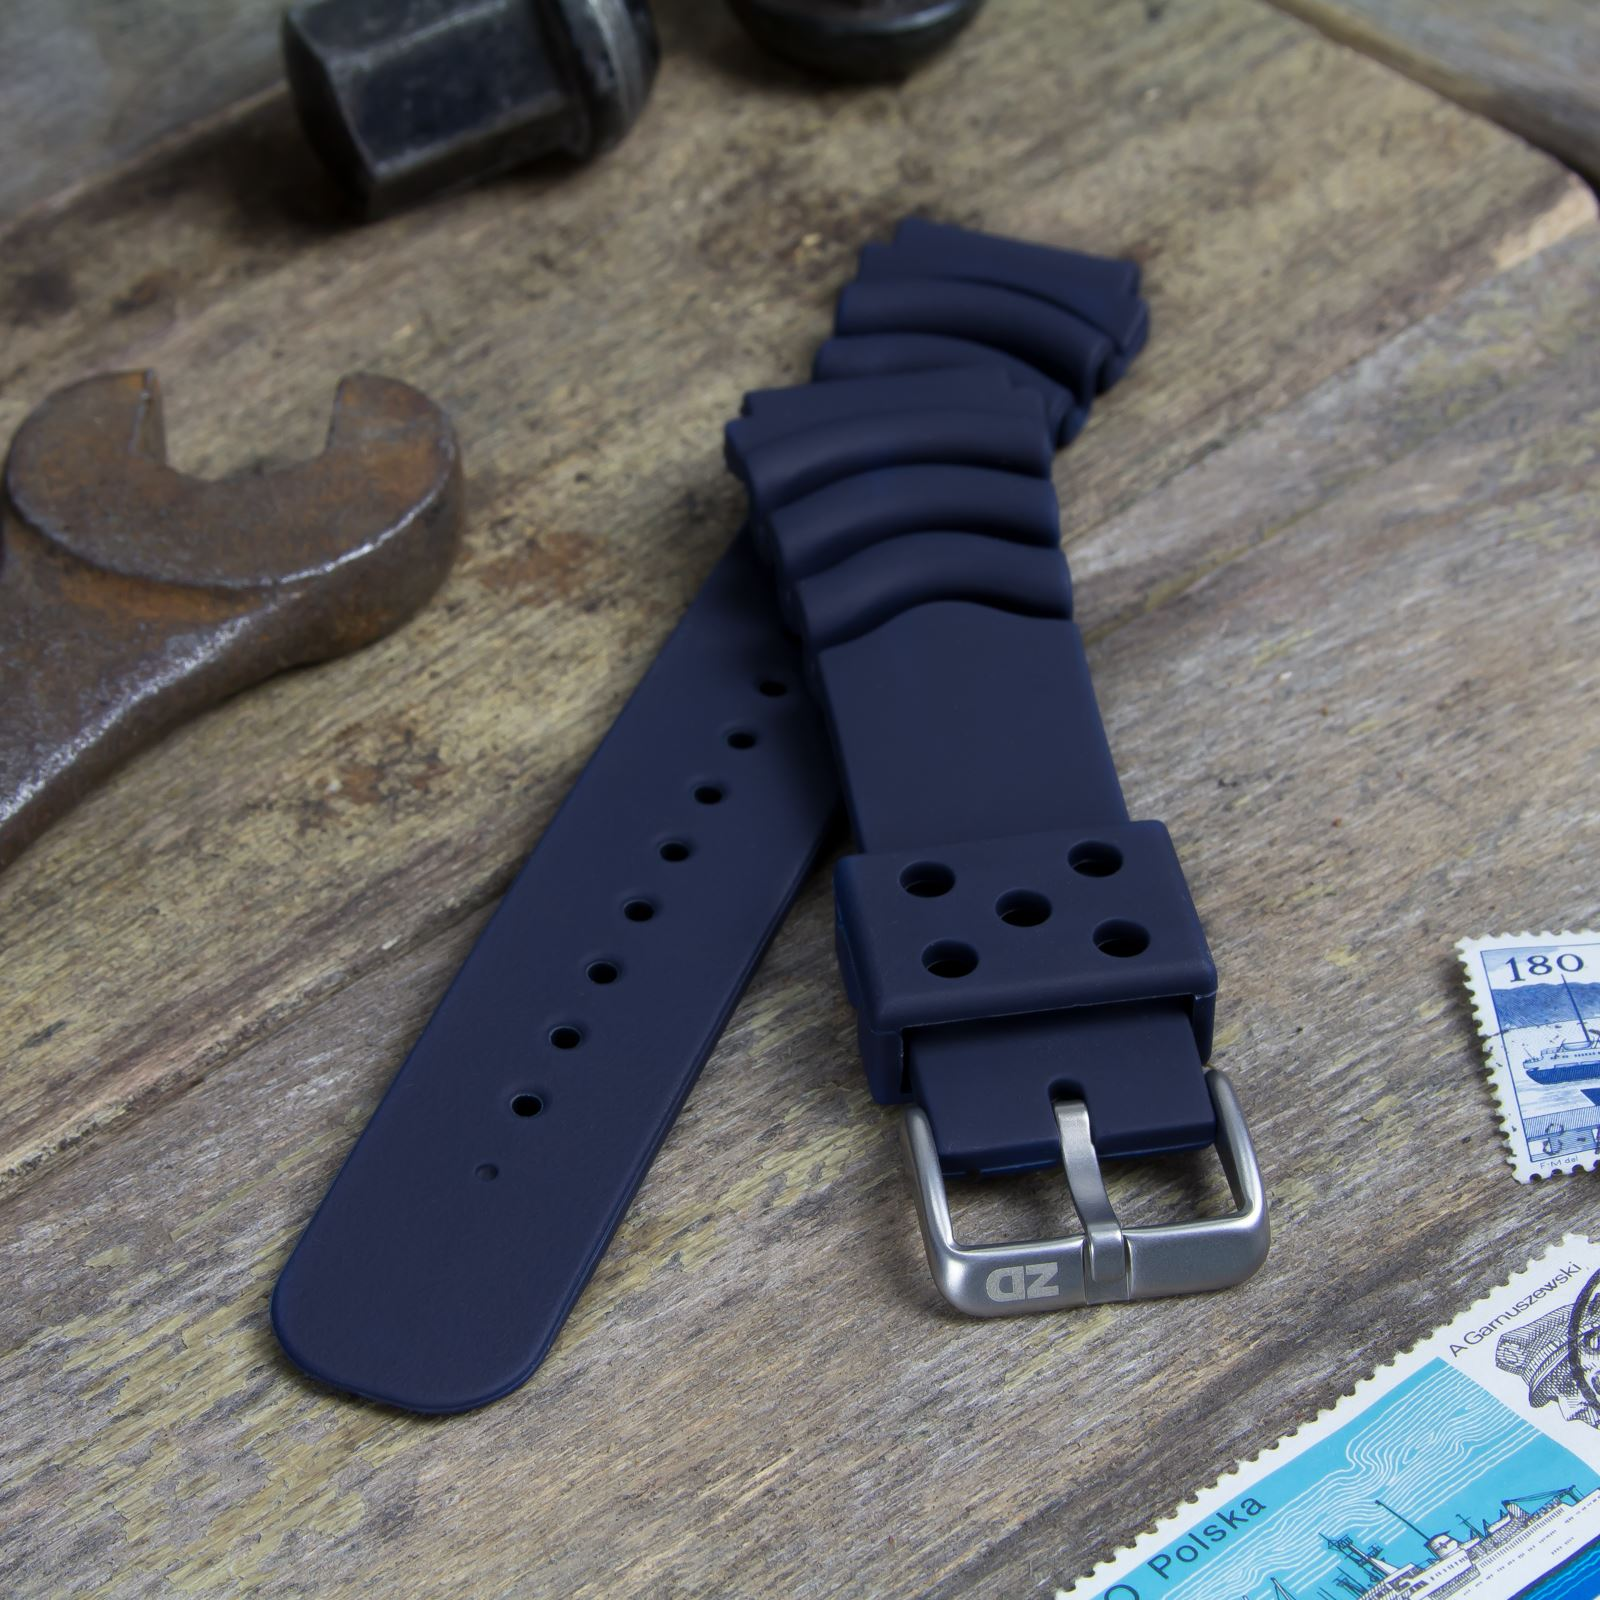 72c0d64cf61 ZULUDIVER PU Rubber Sports Diver Watch Strap for SEIKO Dark Blue 20mm.  About this product. Picture 1 of 5  Picture 2 of 5  Picture 3 of 5 ...